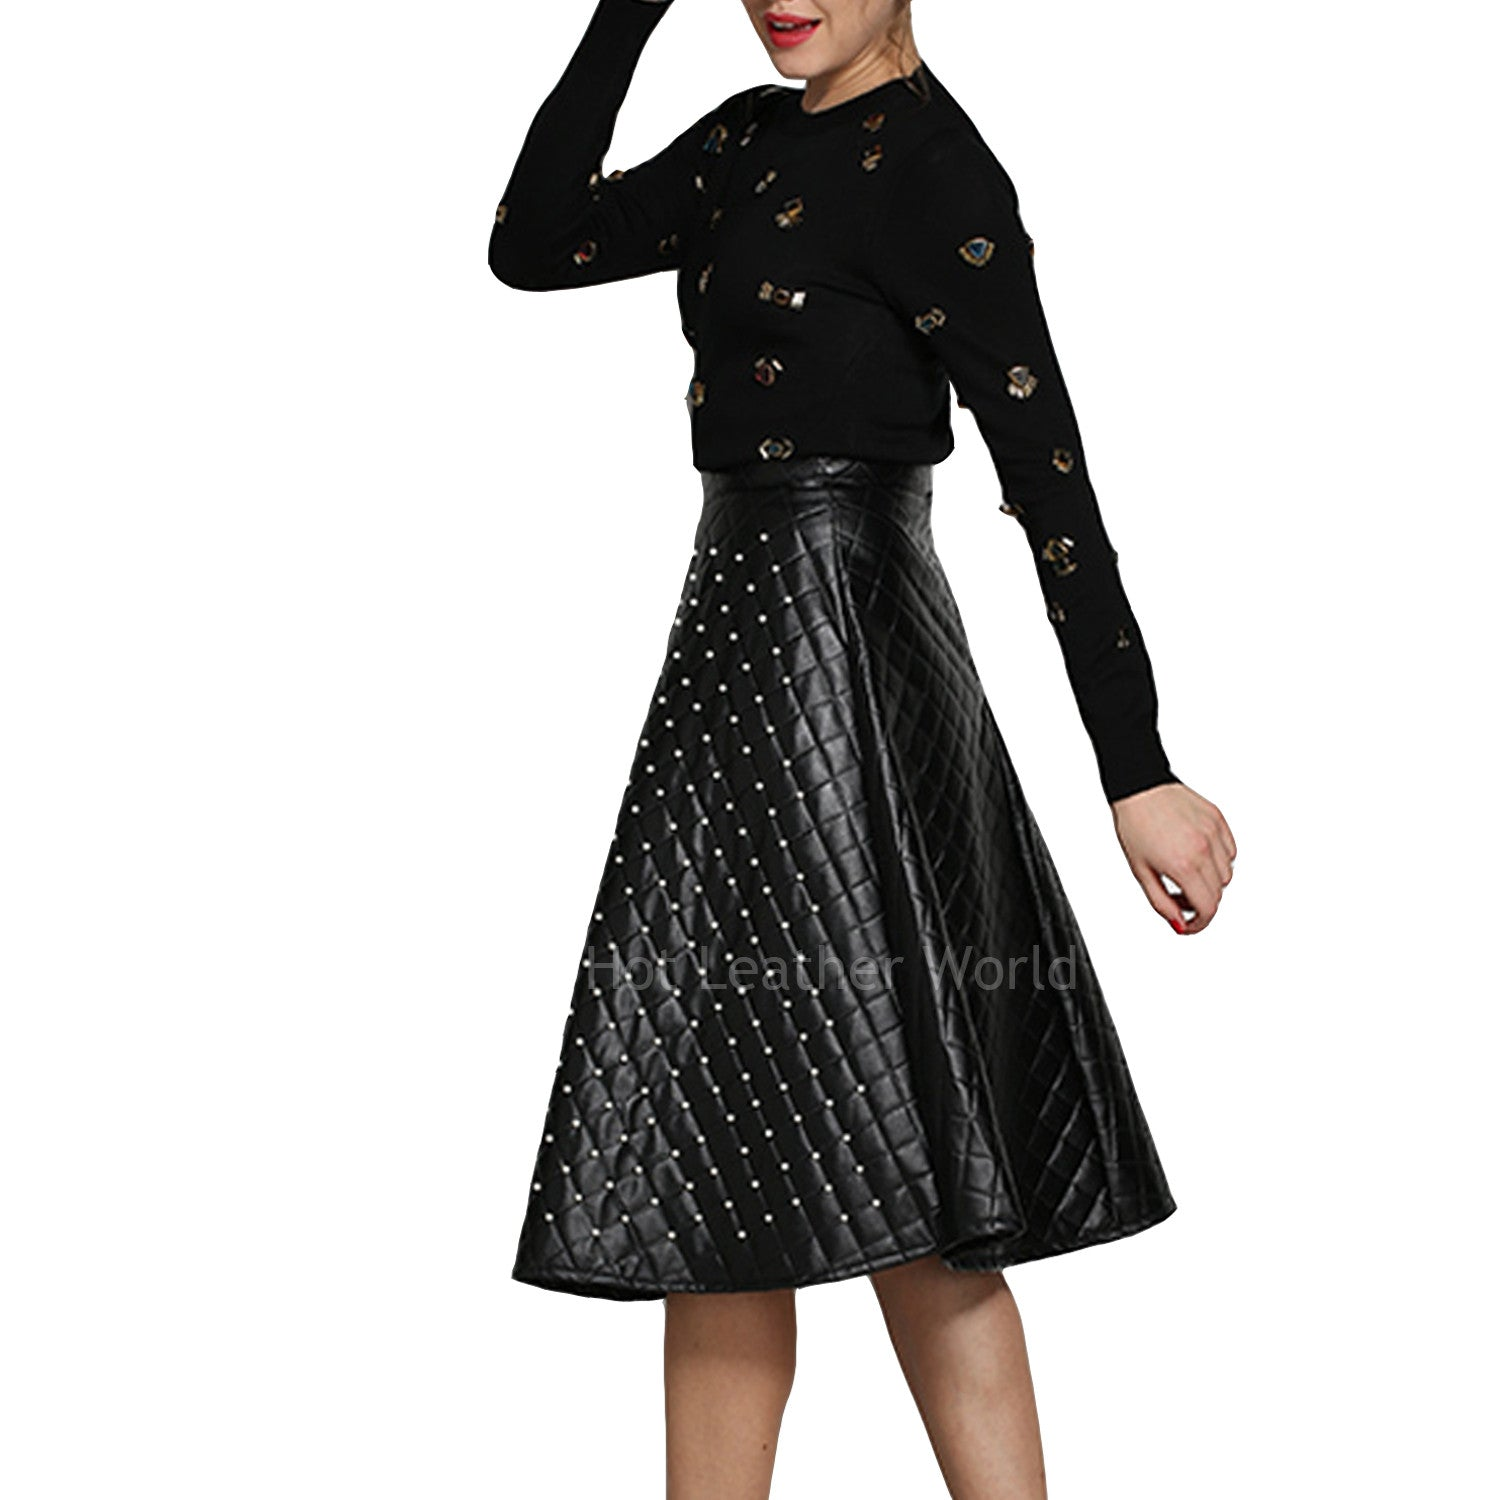 Quilted Style Flared Leather Skirt -  HOTLEATHERWORLD